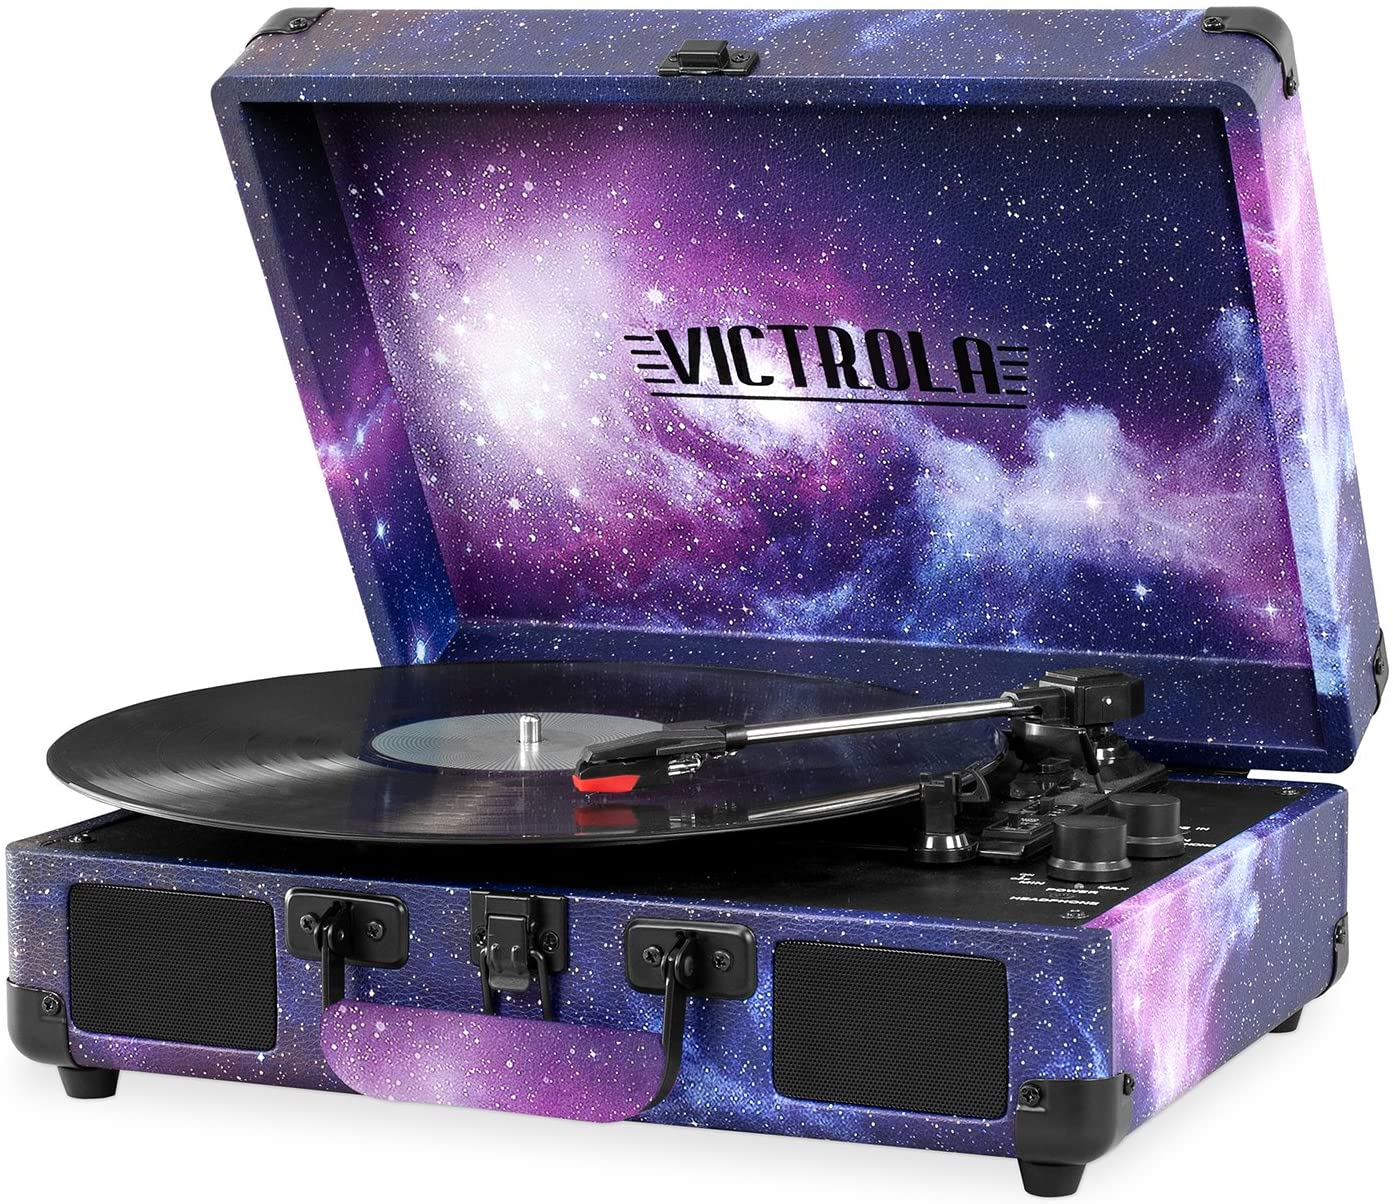 Victrola Vintage 3-Speed Bluetooth Portable Suitcase Record Player with Built-in Speakers   Upgraded Turntable Audio Sound  Includes Extra Stylus   Galaxy (VSC-550BT-GX)